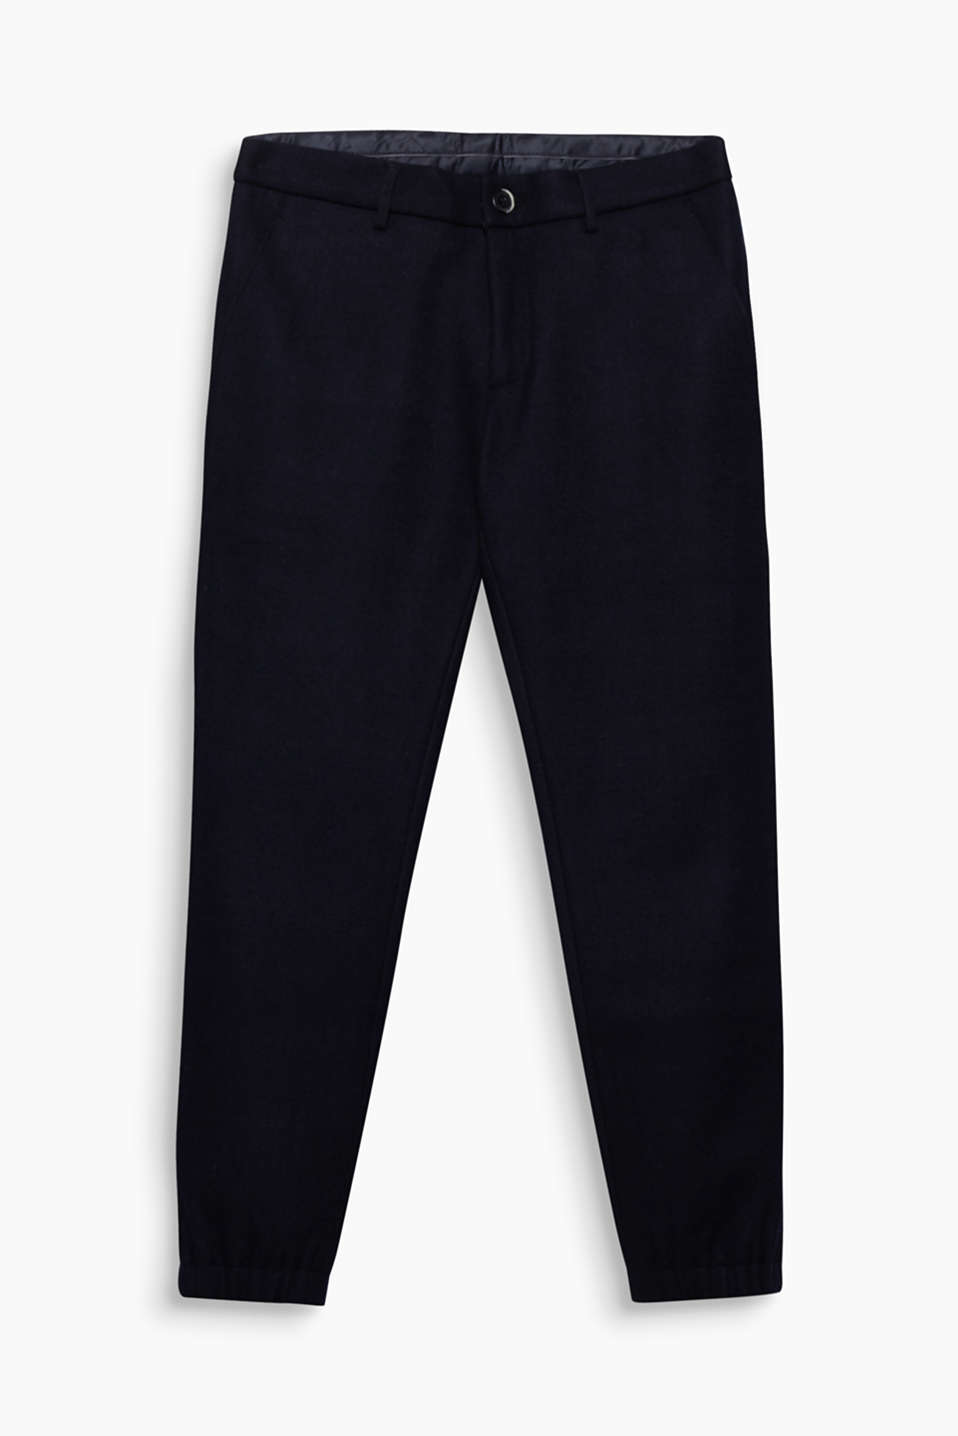 These fine knit trousers in an elegant wool blend are a high-quality essential piece for winter.